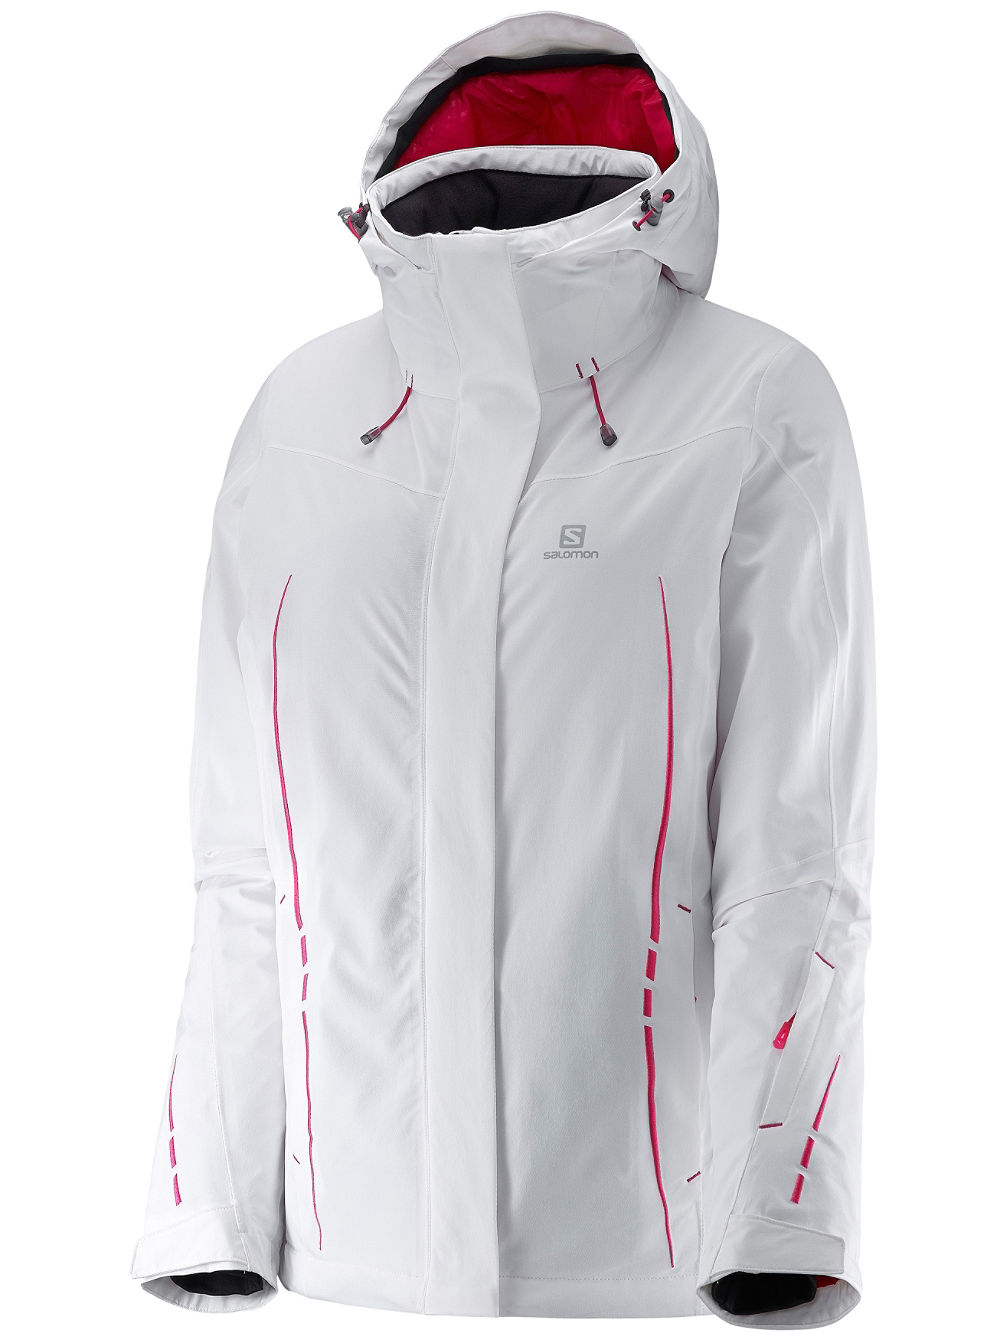 cd7fdeae16b9 Buy Salomon Icestorm Jacket online at Blue Tomato